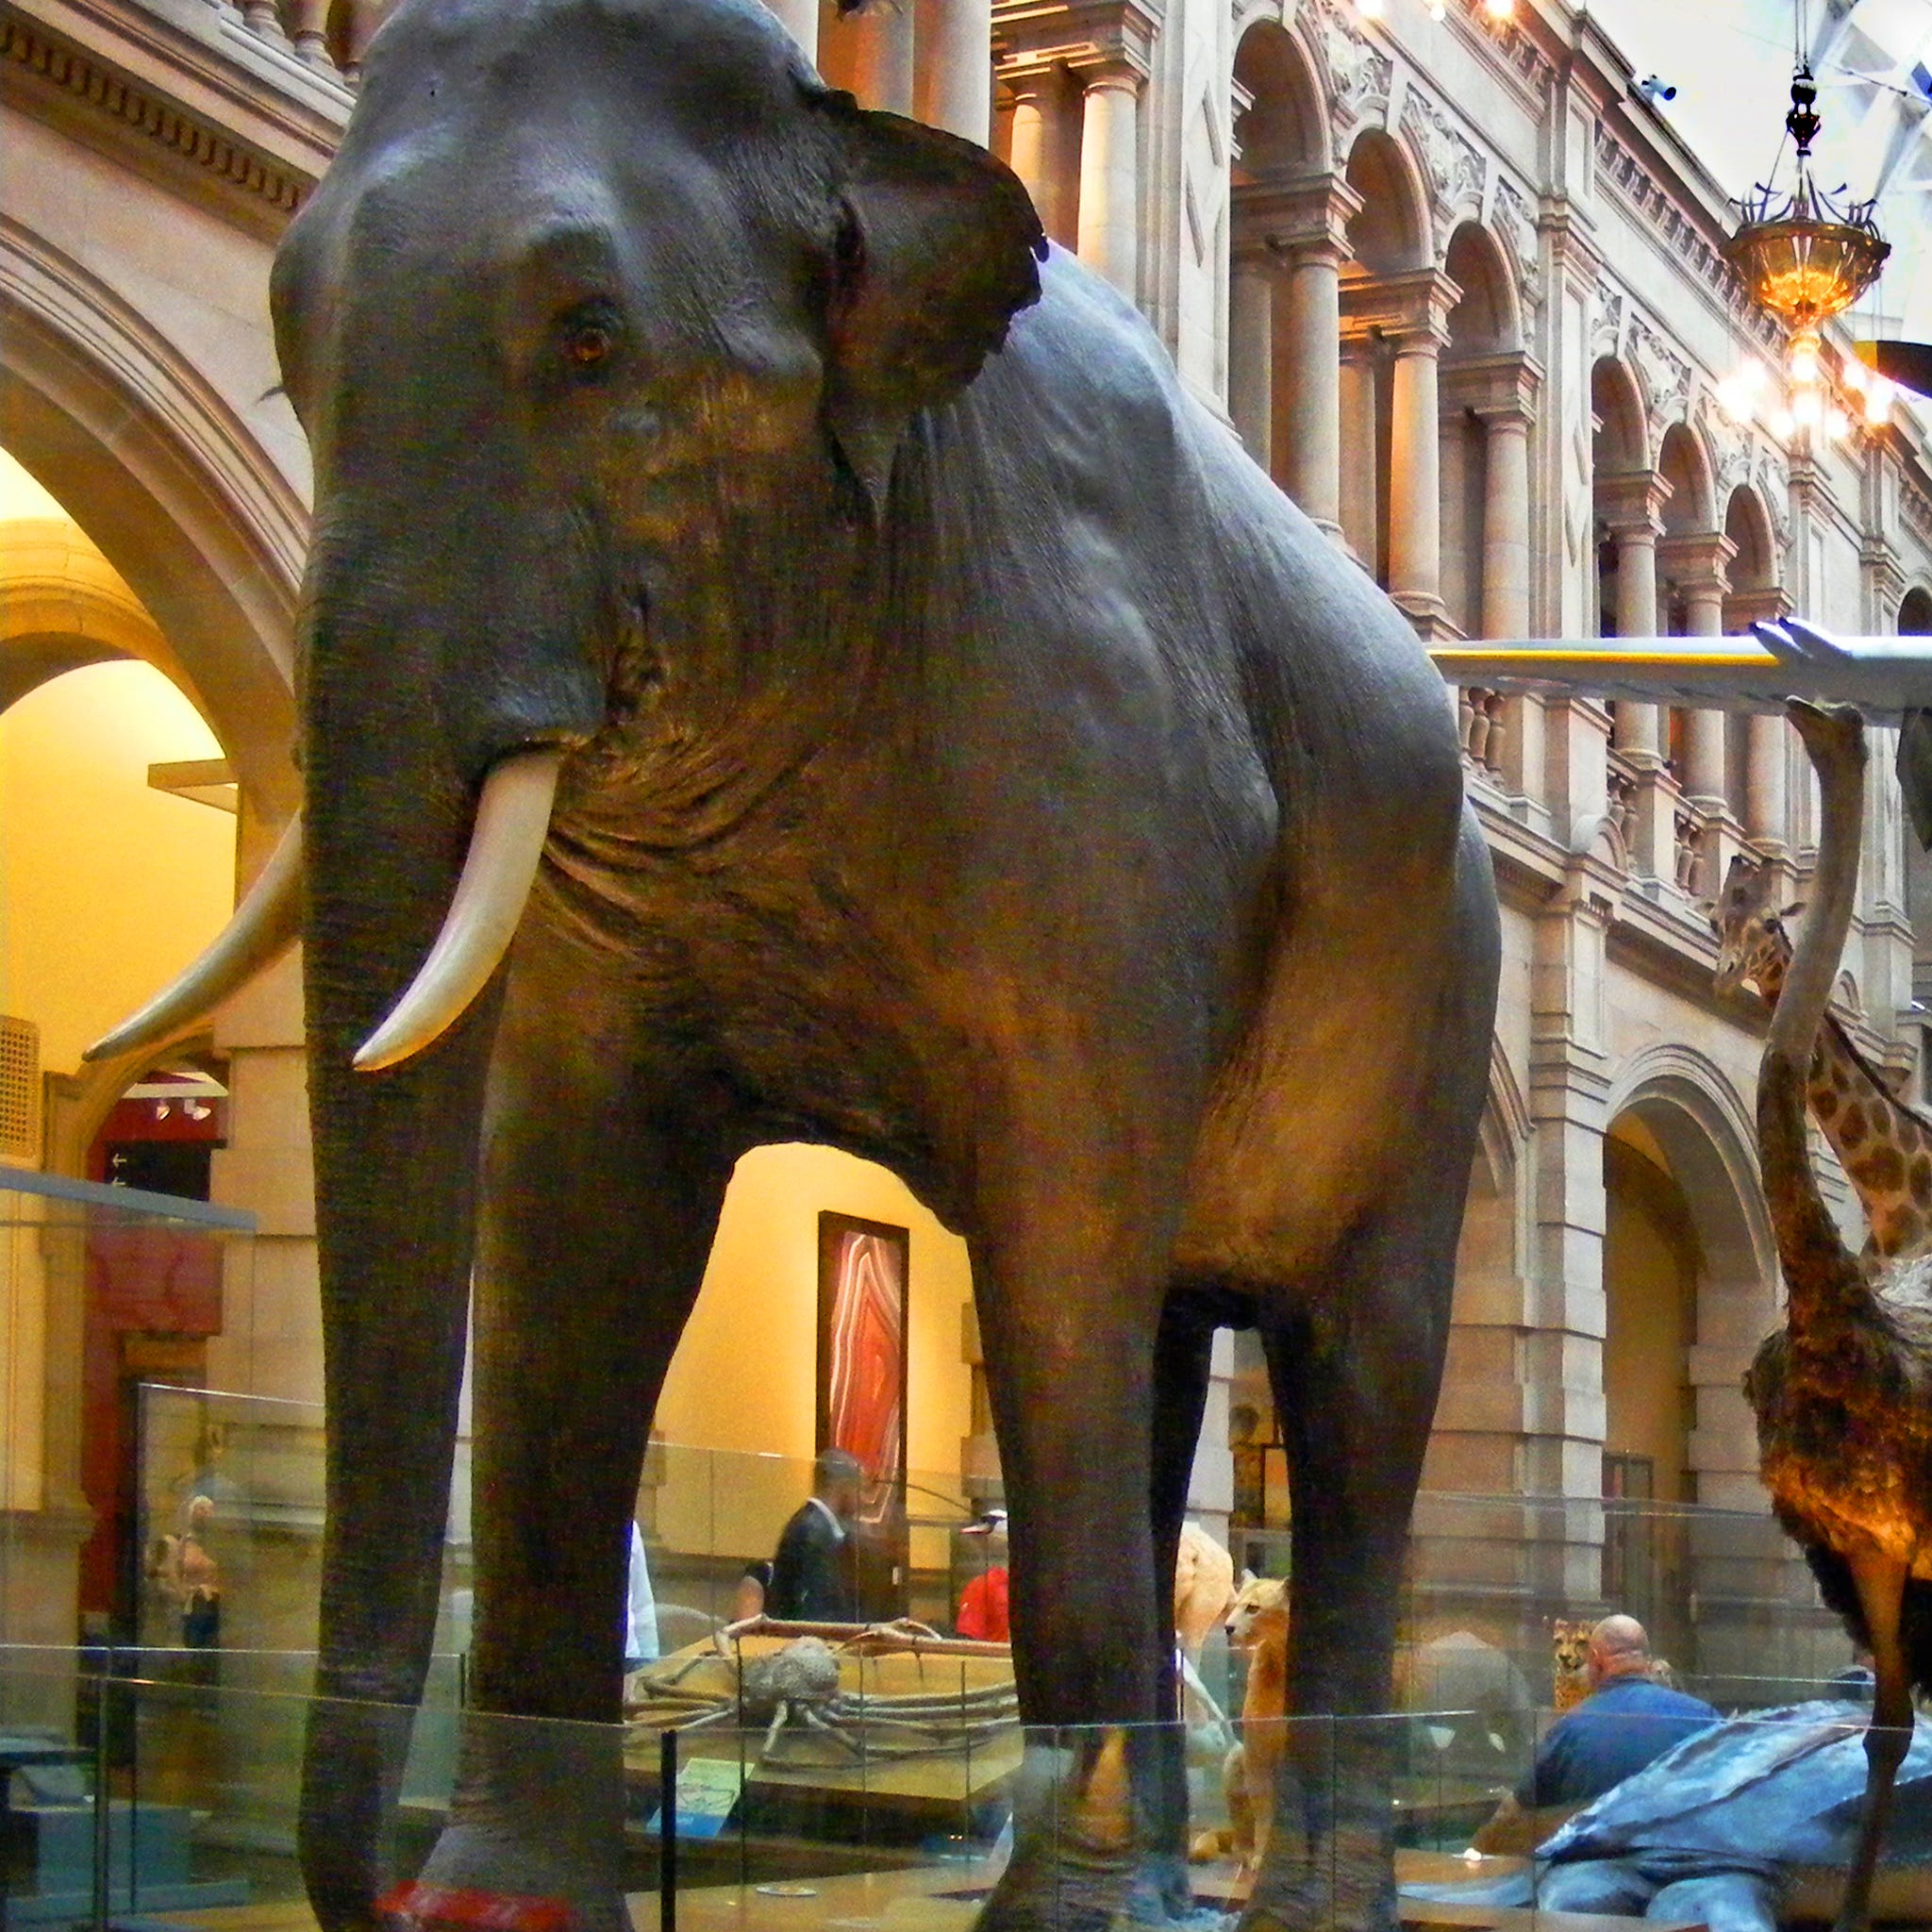 The Kelvingrove Art Gallery houses everything from Mackintosh's art nouveau designs to stuffed elephants to medieval armor.